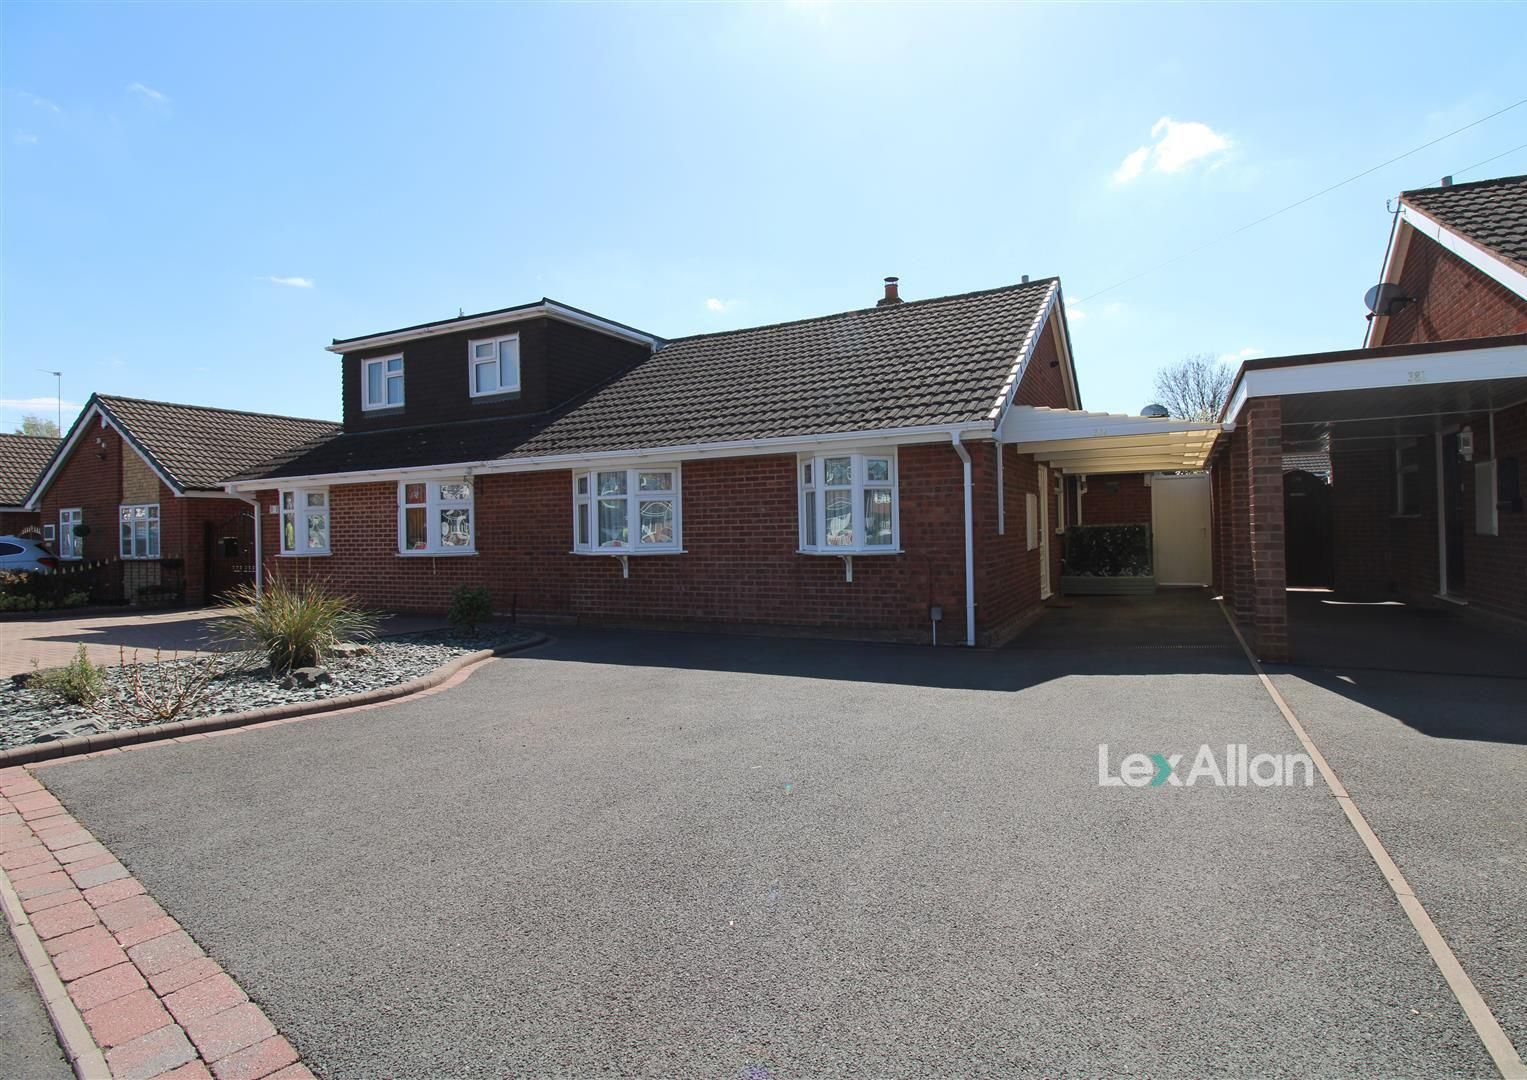 2 bed semi-detached-bungalow for sale, DY6